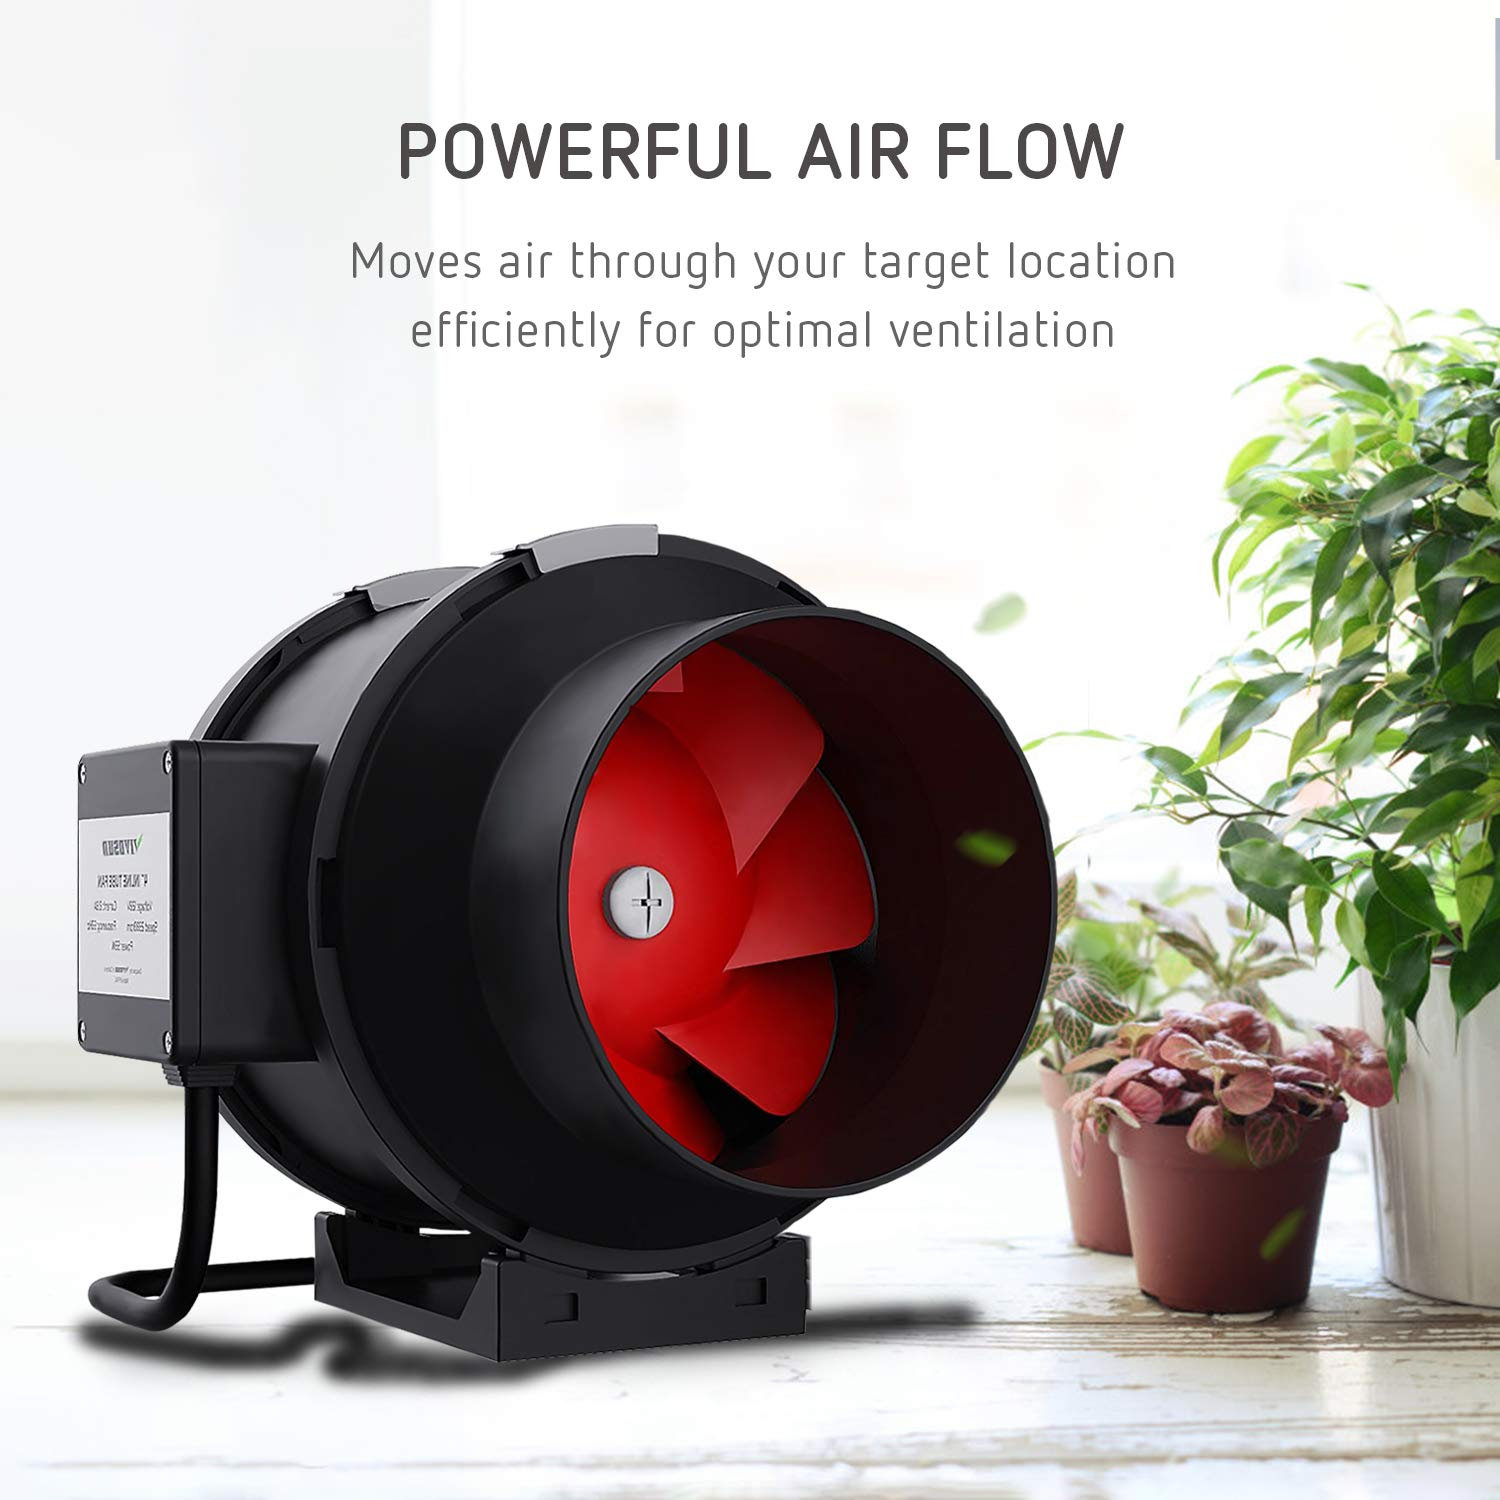 VIVOSUN 6 Inch 390 CFM Inline Duct Fan with Variable Speed Controller HVAC Blower for Ventilation